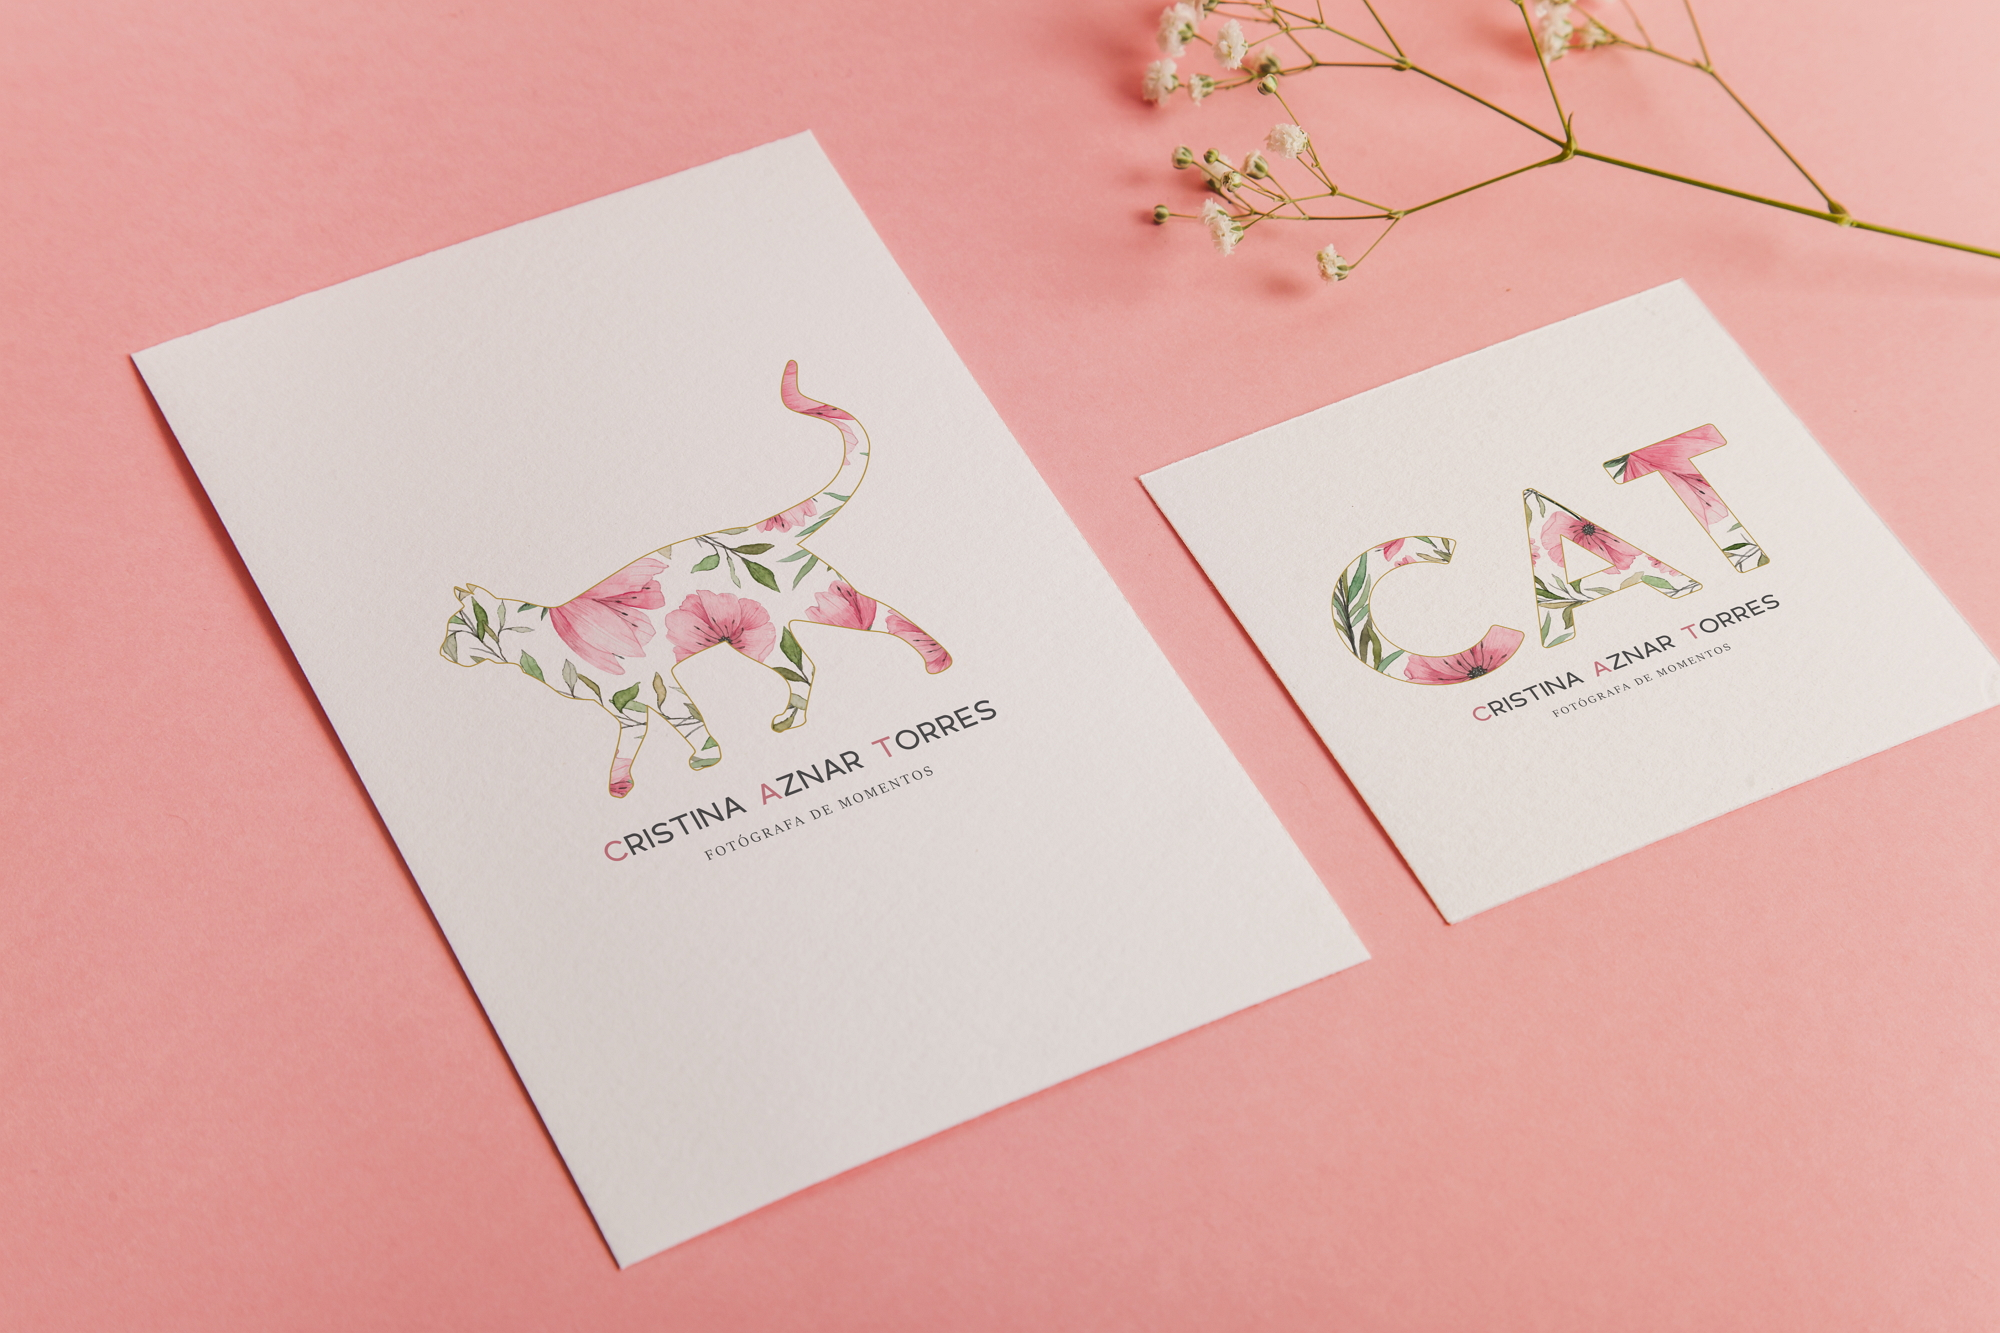 watercolor business card and logos for Cristina Aznar Torres, photographer item